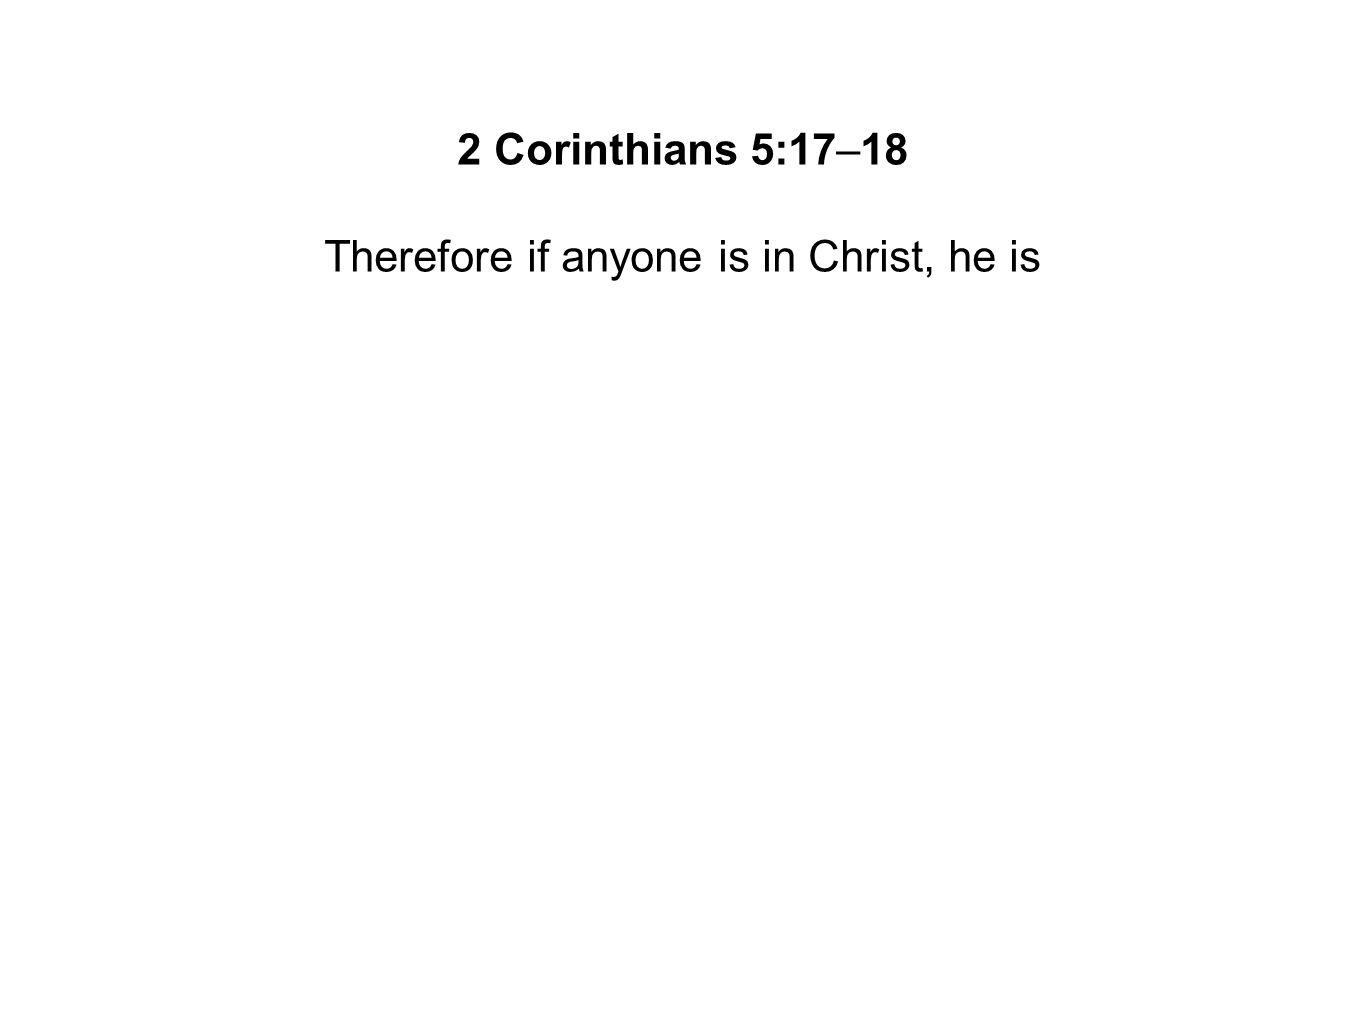 Therefore if anyone is in Christ, he is